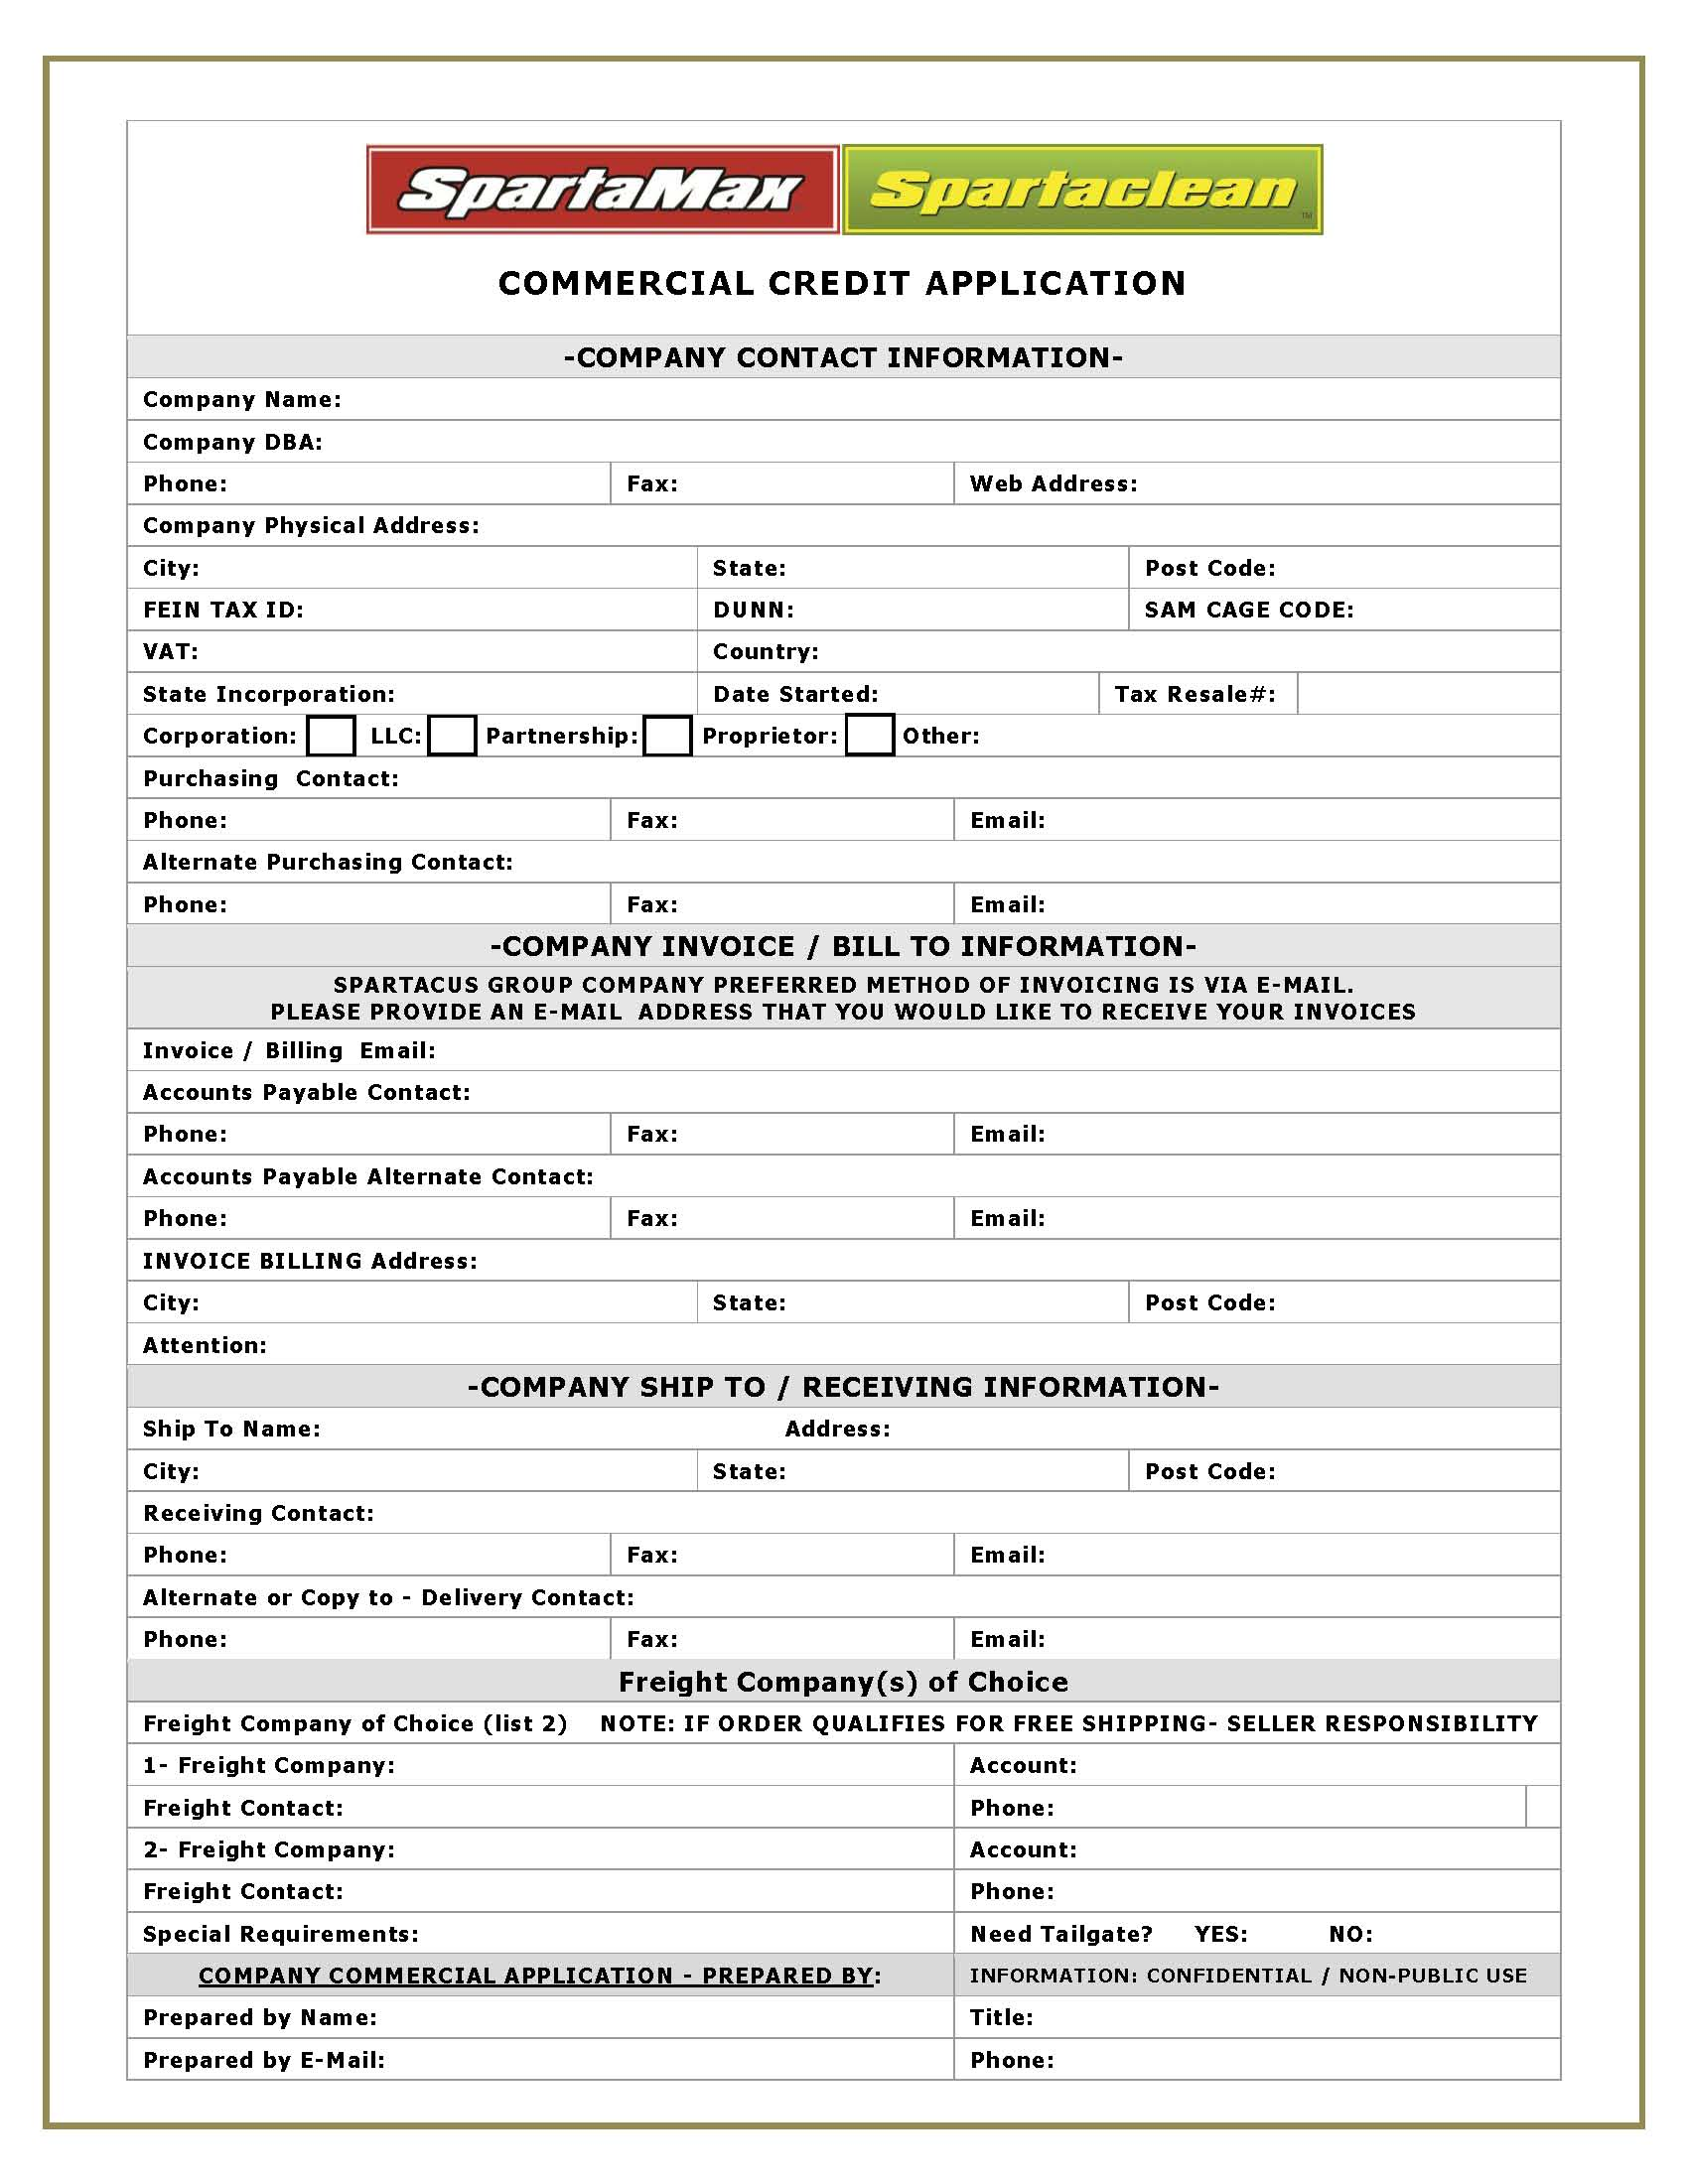 Doc12811656 New Customer Information Form Template new – New Customer Account Form Template